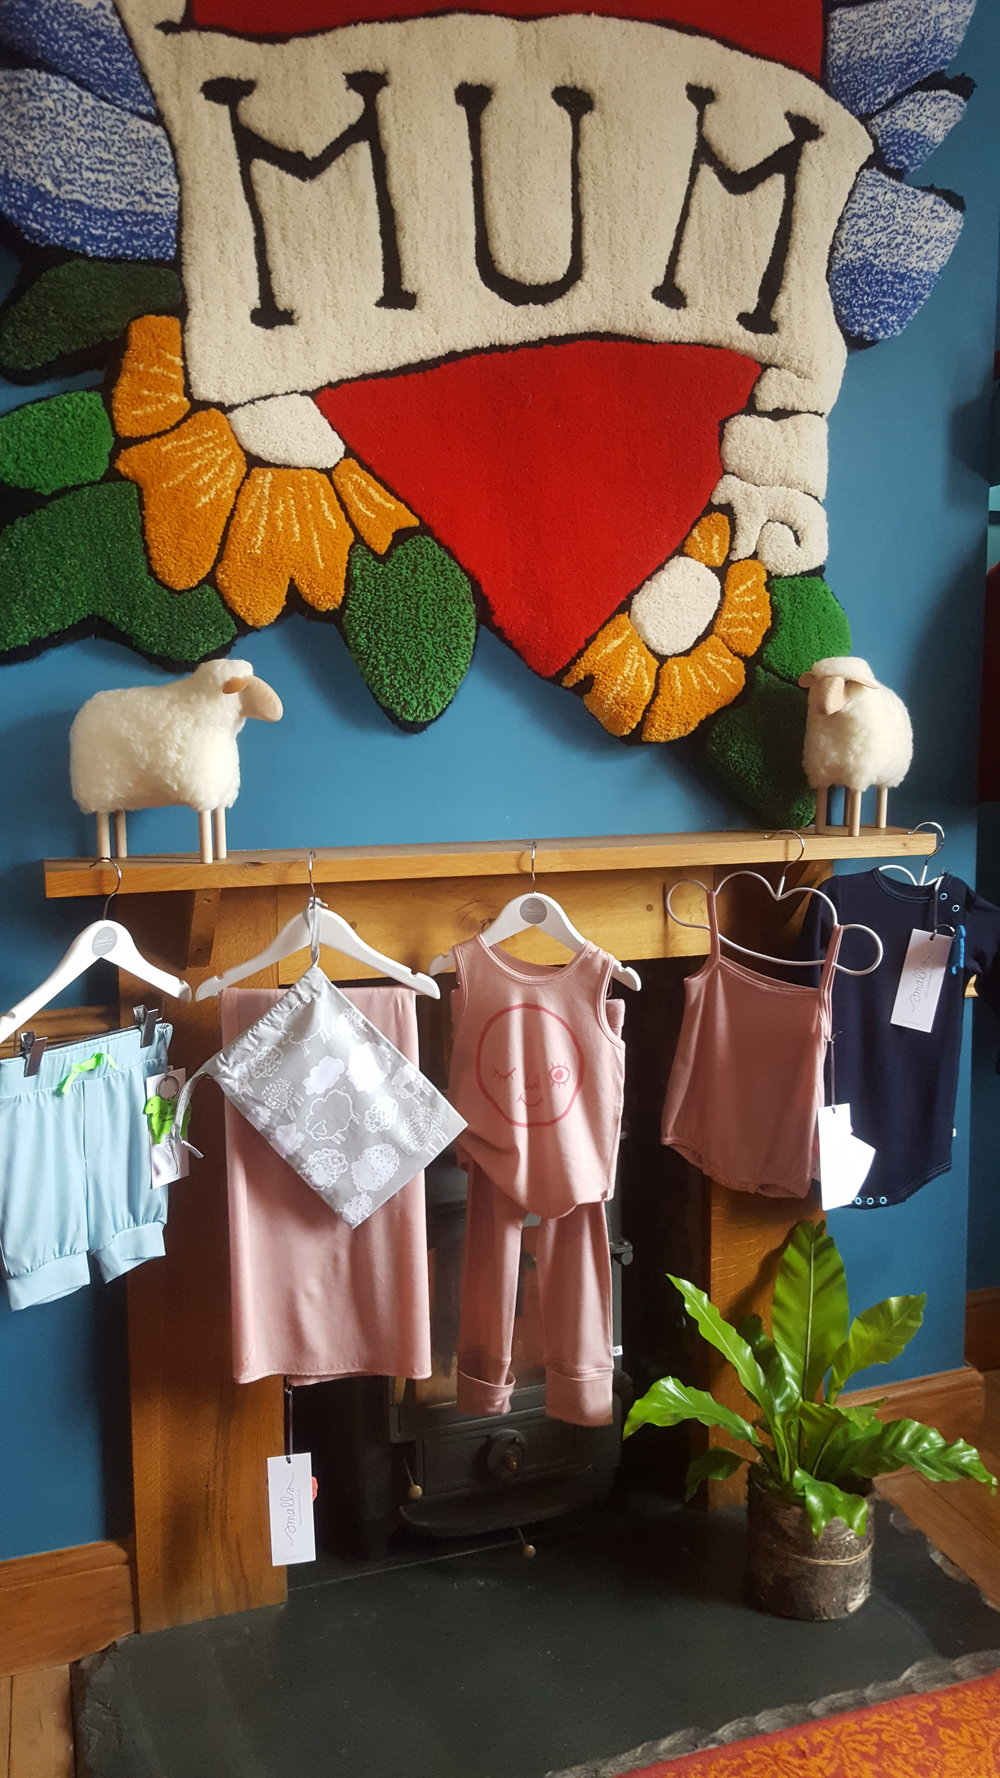 Smalls and The Bright Company collaboration at the Wool BnB